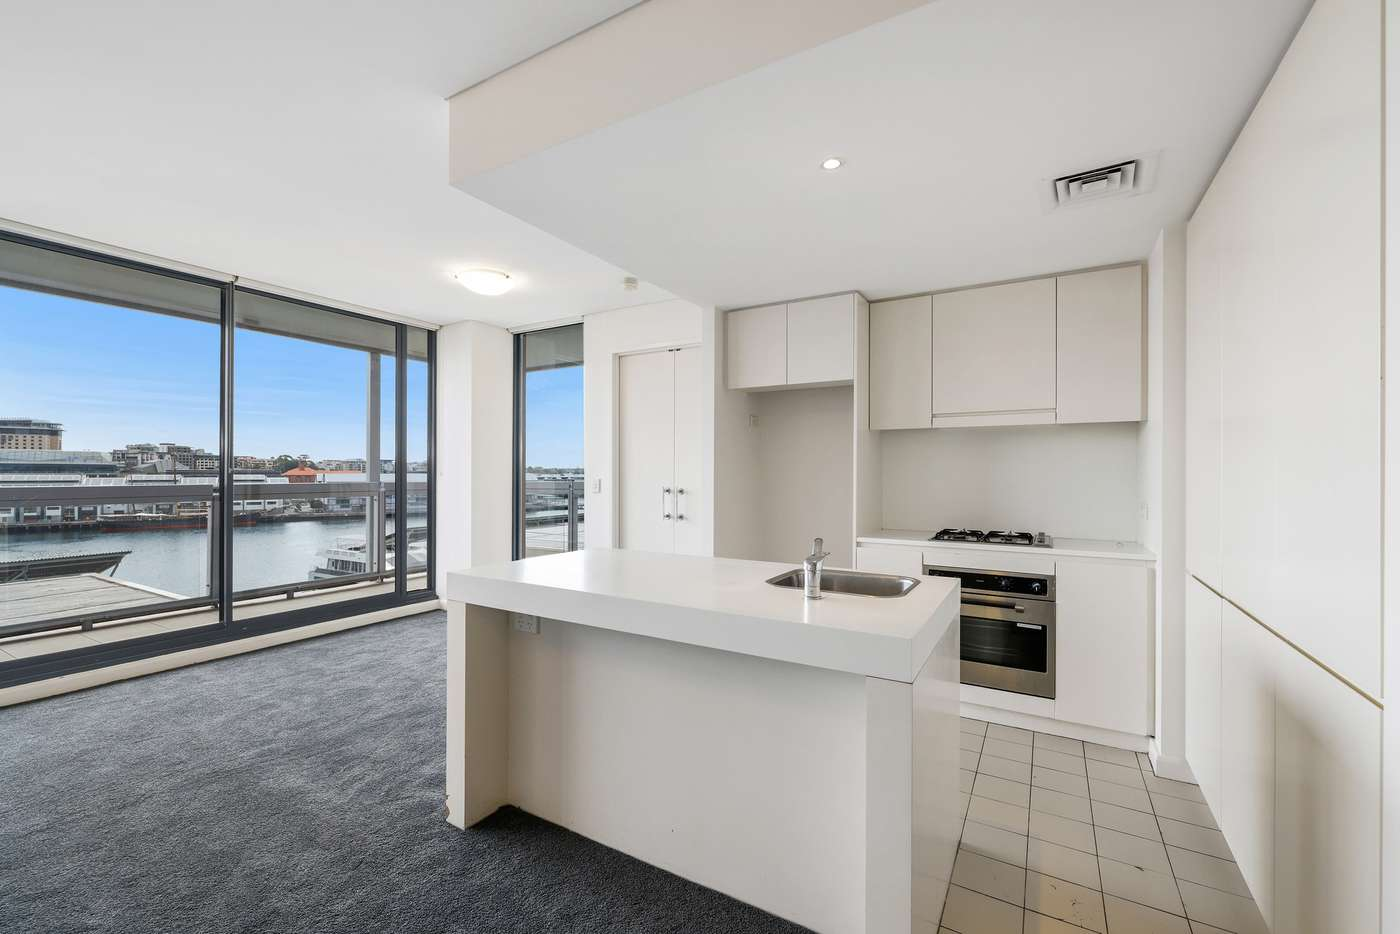 Main view of Homely apartment listing, 704/45 Shelley Street, Sydney NSW 2000